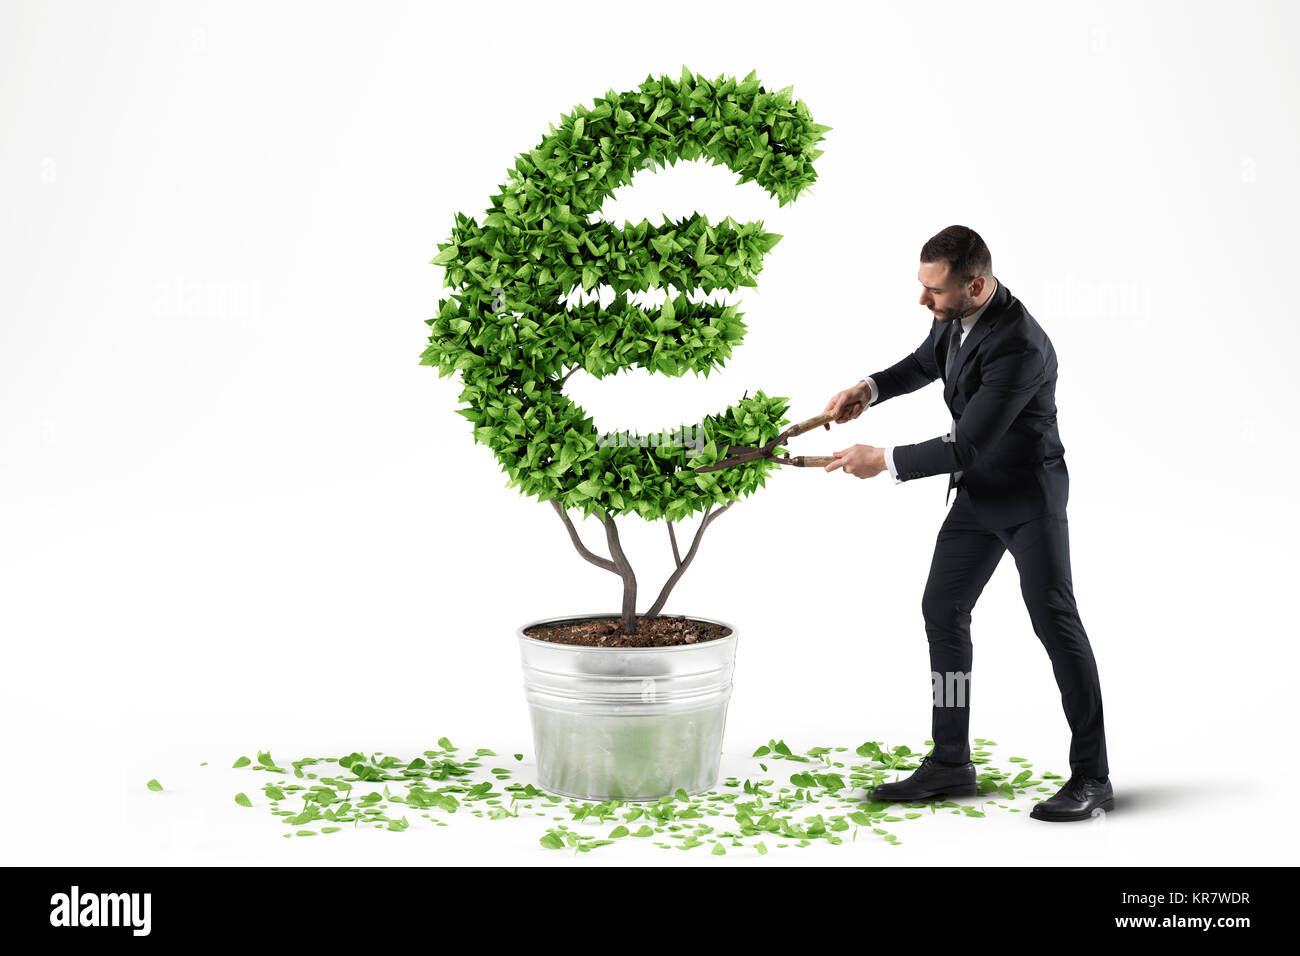 Potted plant with eur shape. 3D Rendering - Stock Image